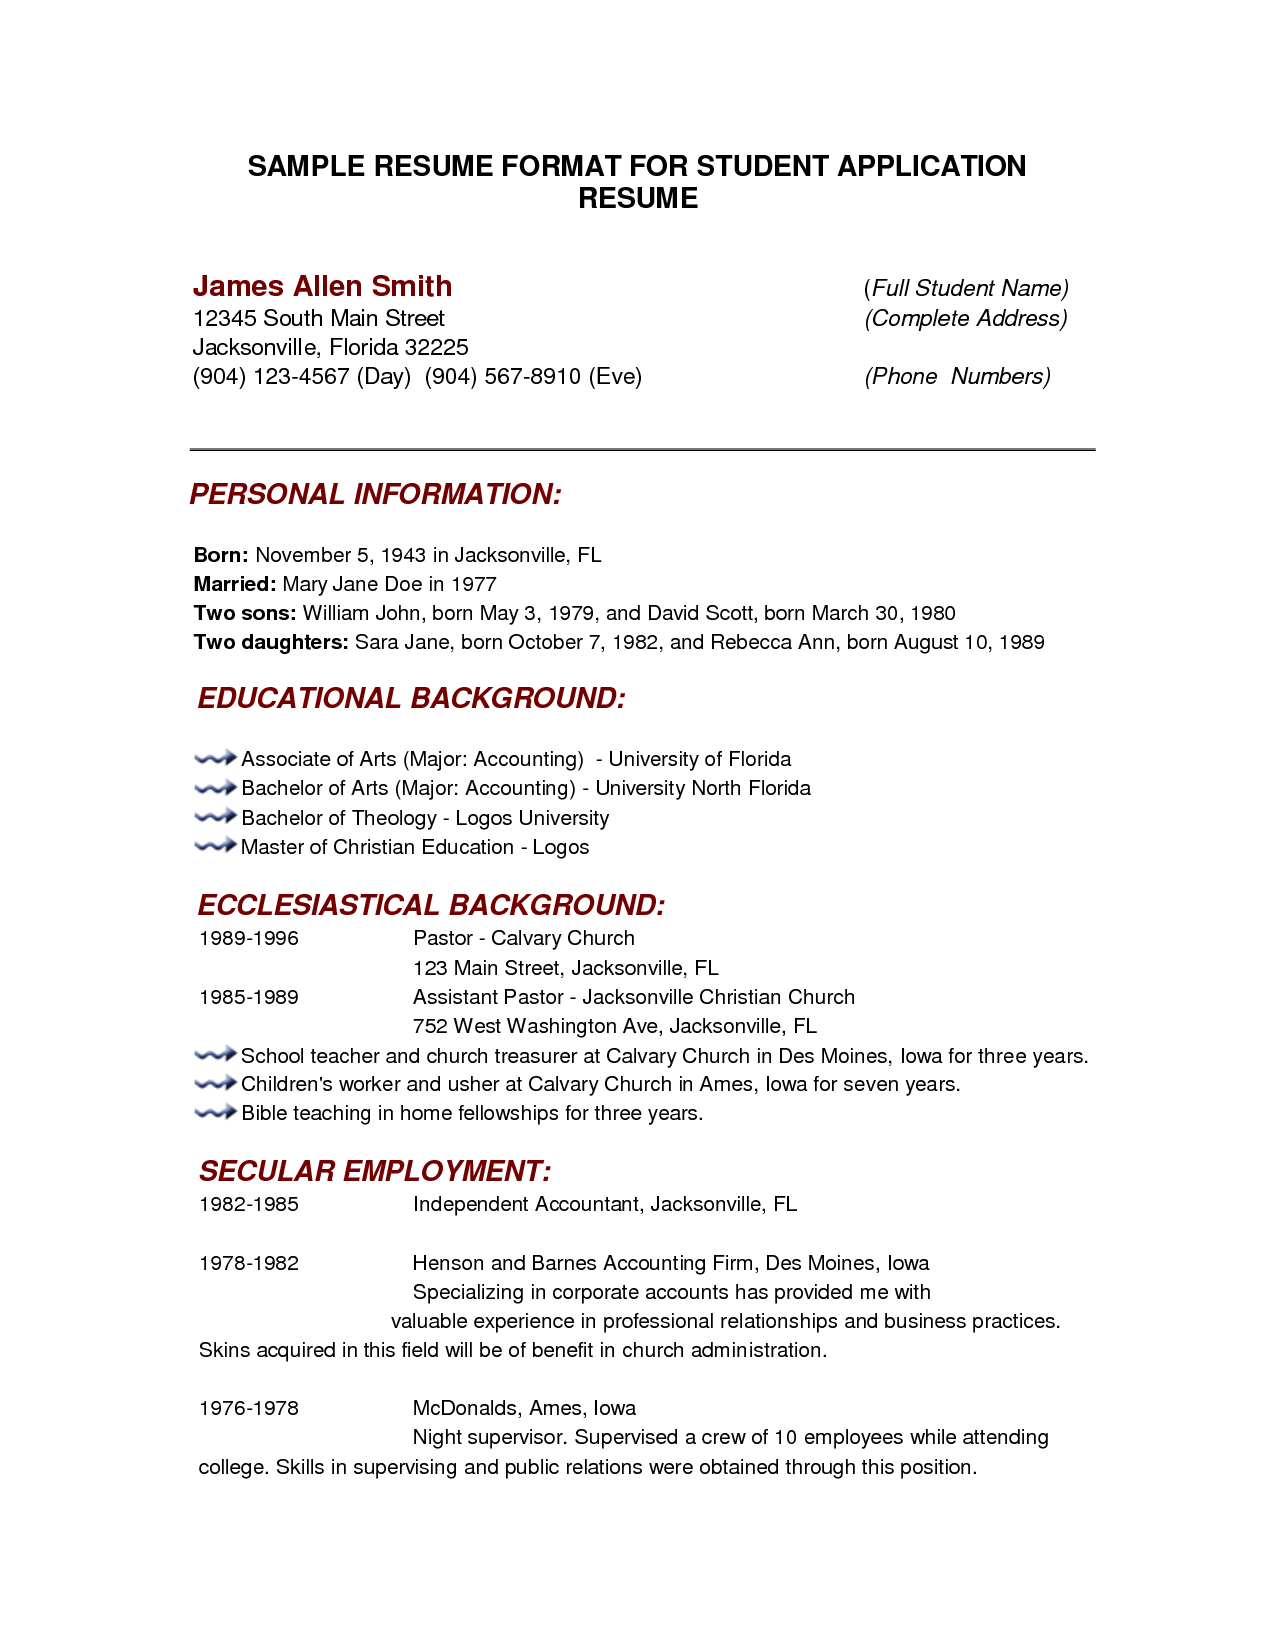 How To Write A Resume Objective Resume Template For College Students  Httpwwwresumecareer